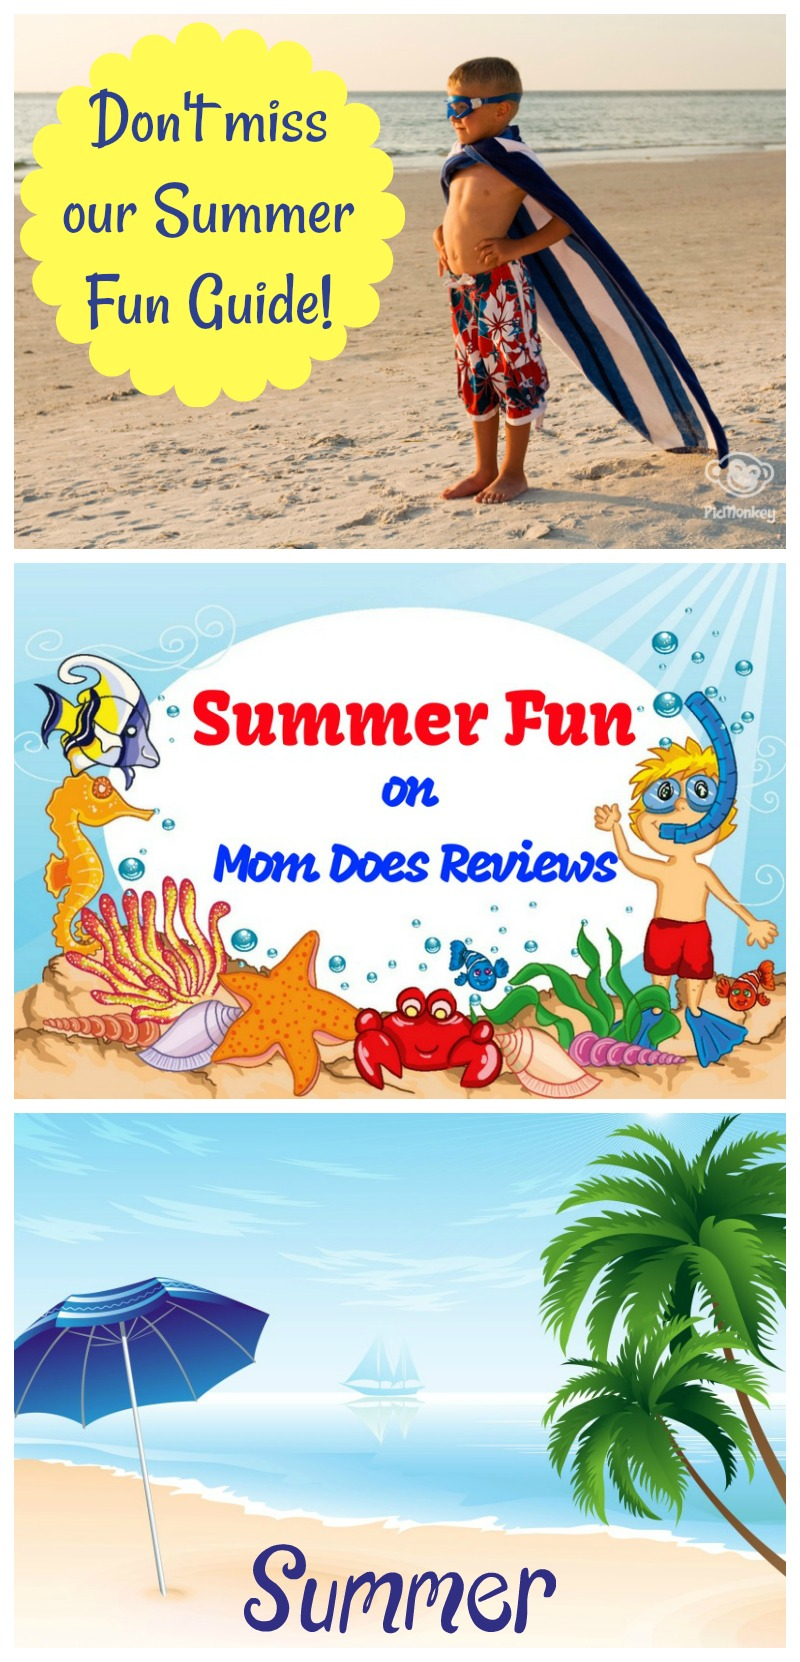 Summer Fun on Mom Does Reviews #MDRSummerFun